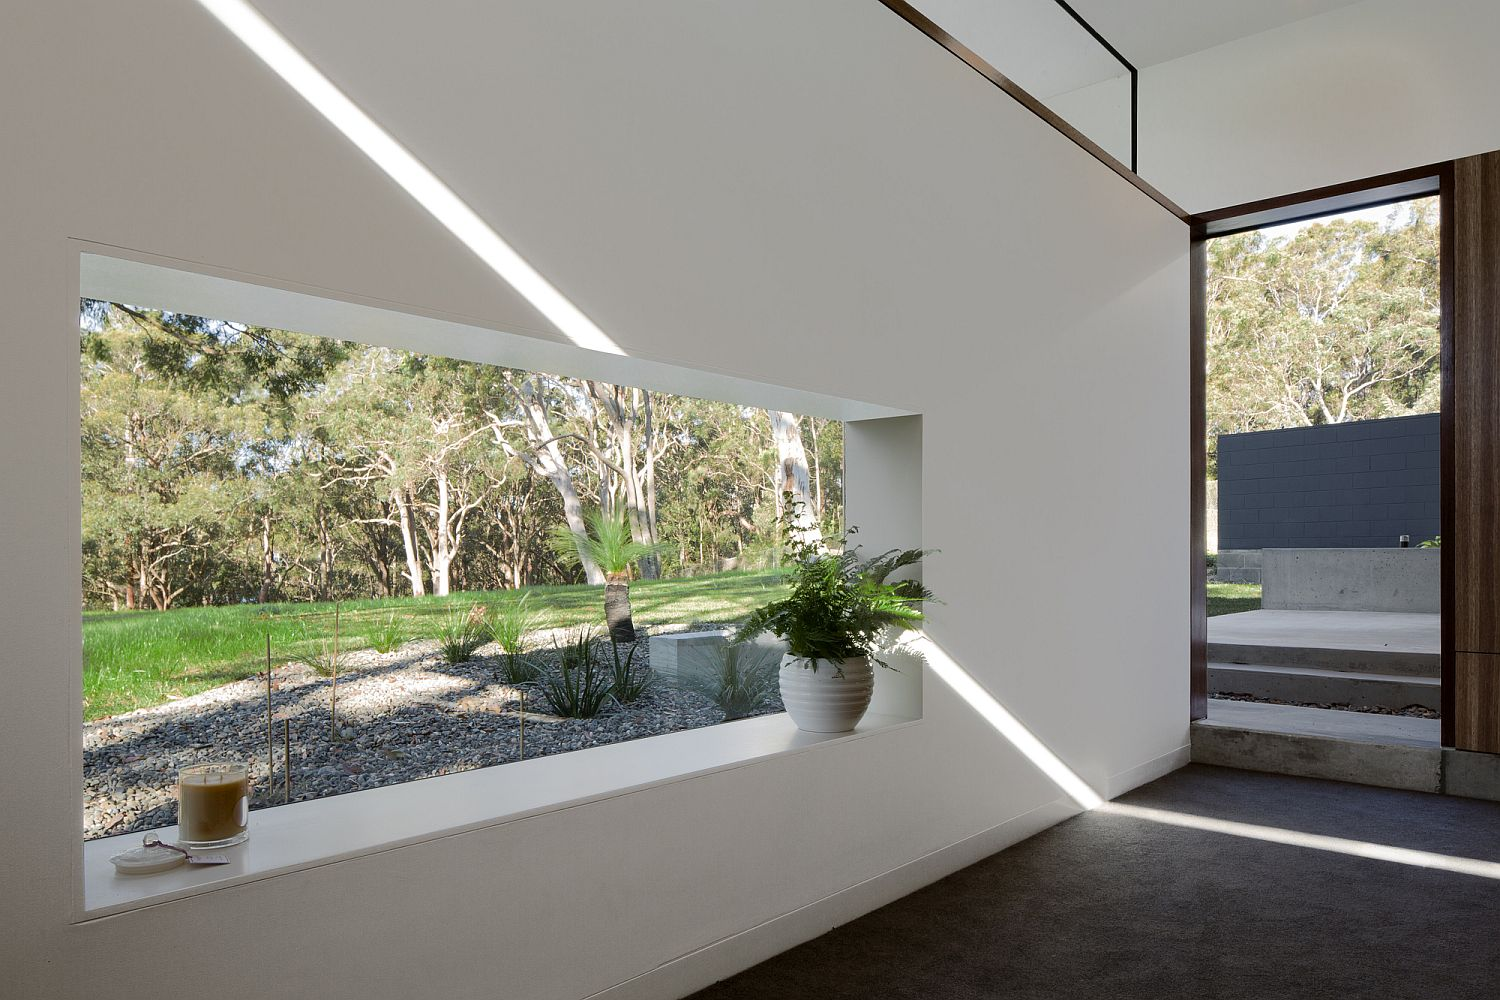 Cut-outs and windows bring in ample natural light